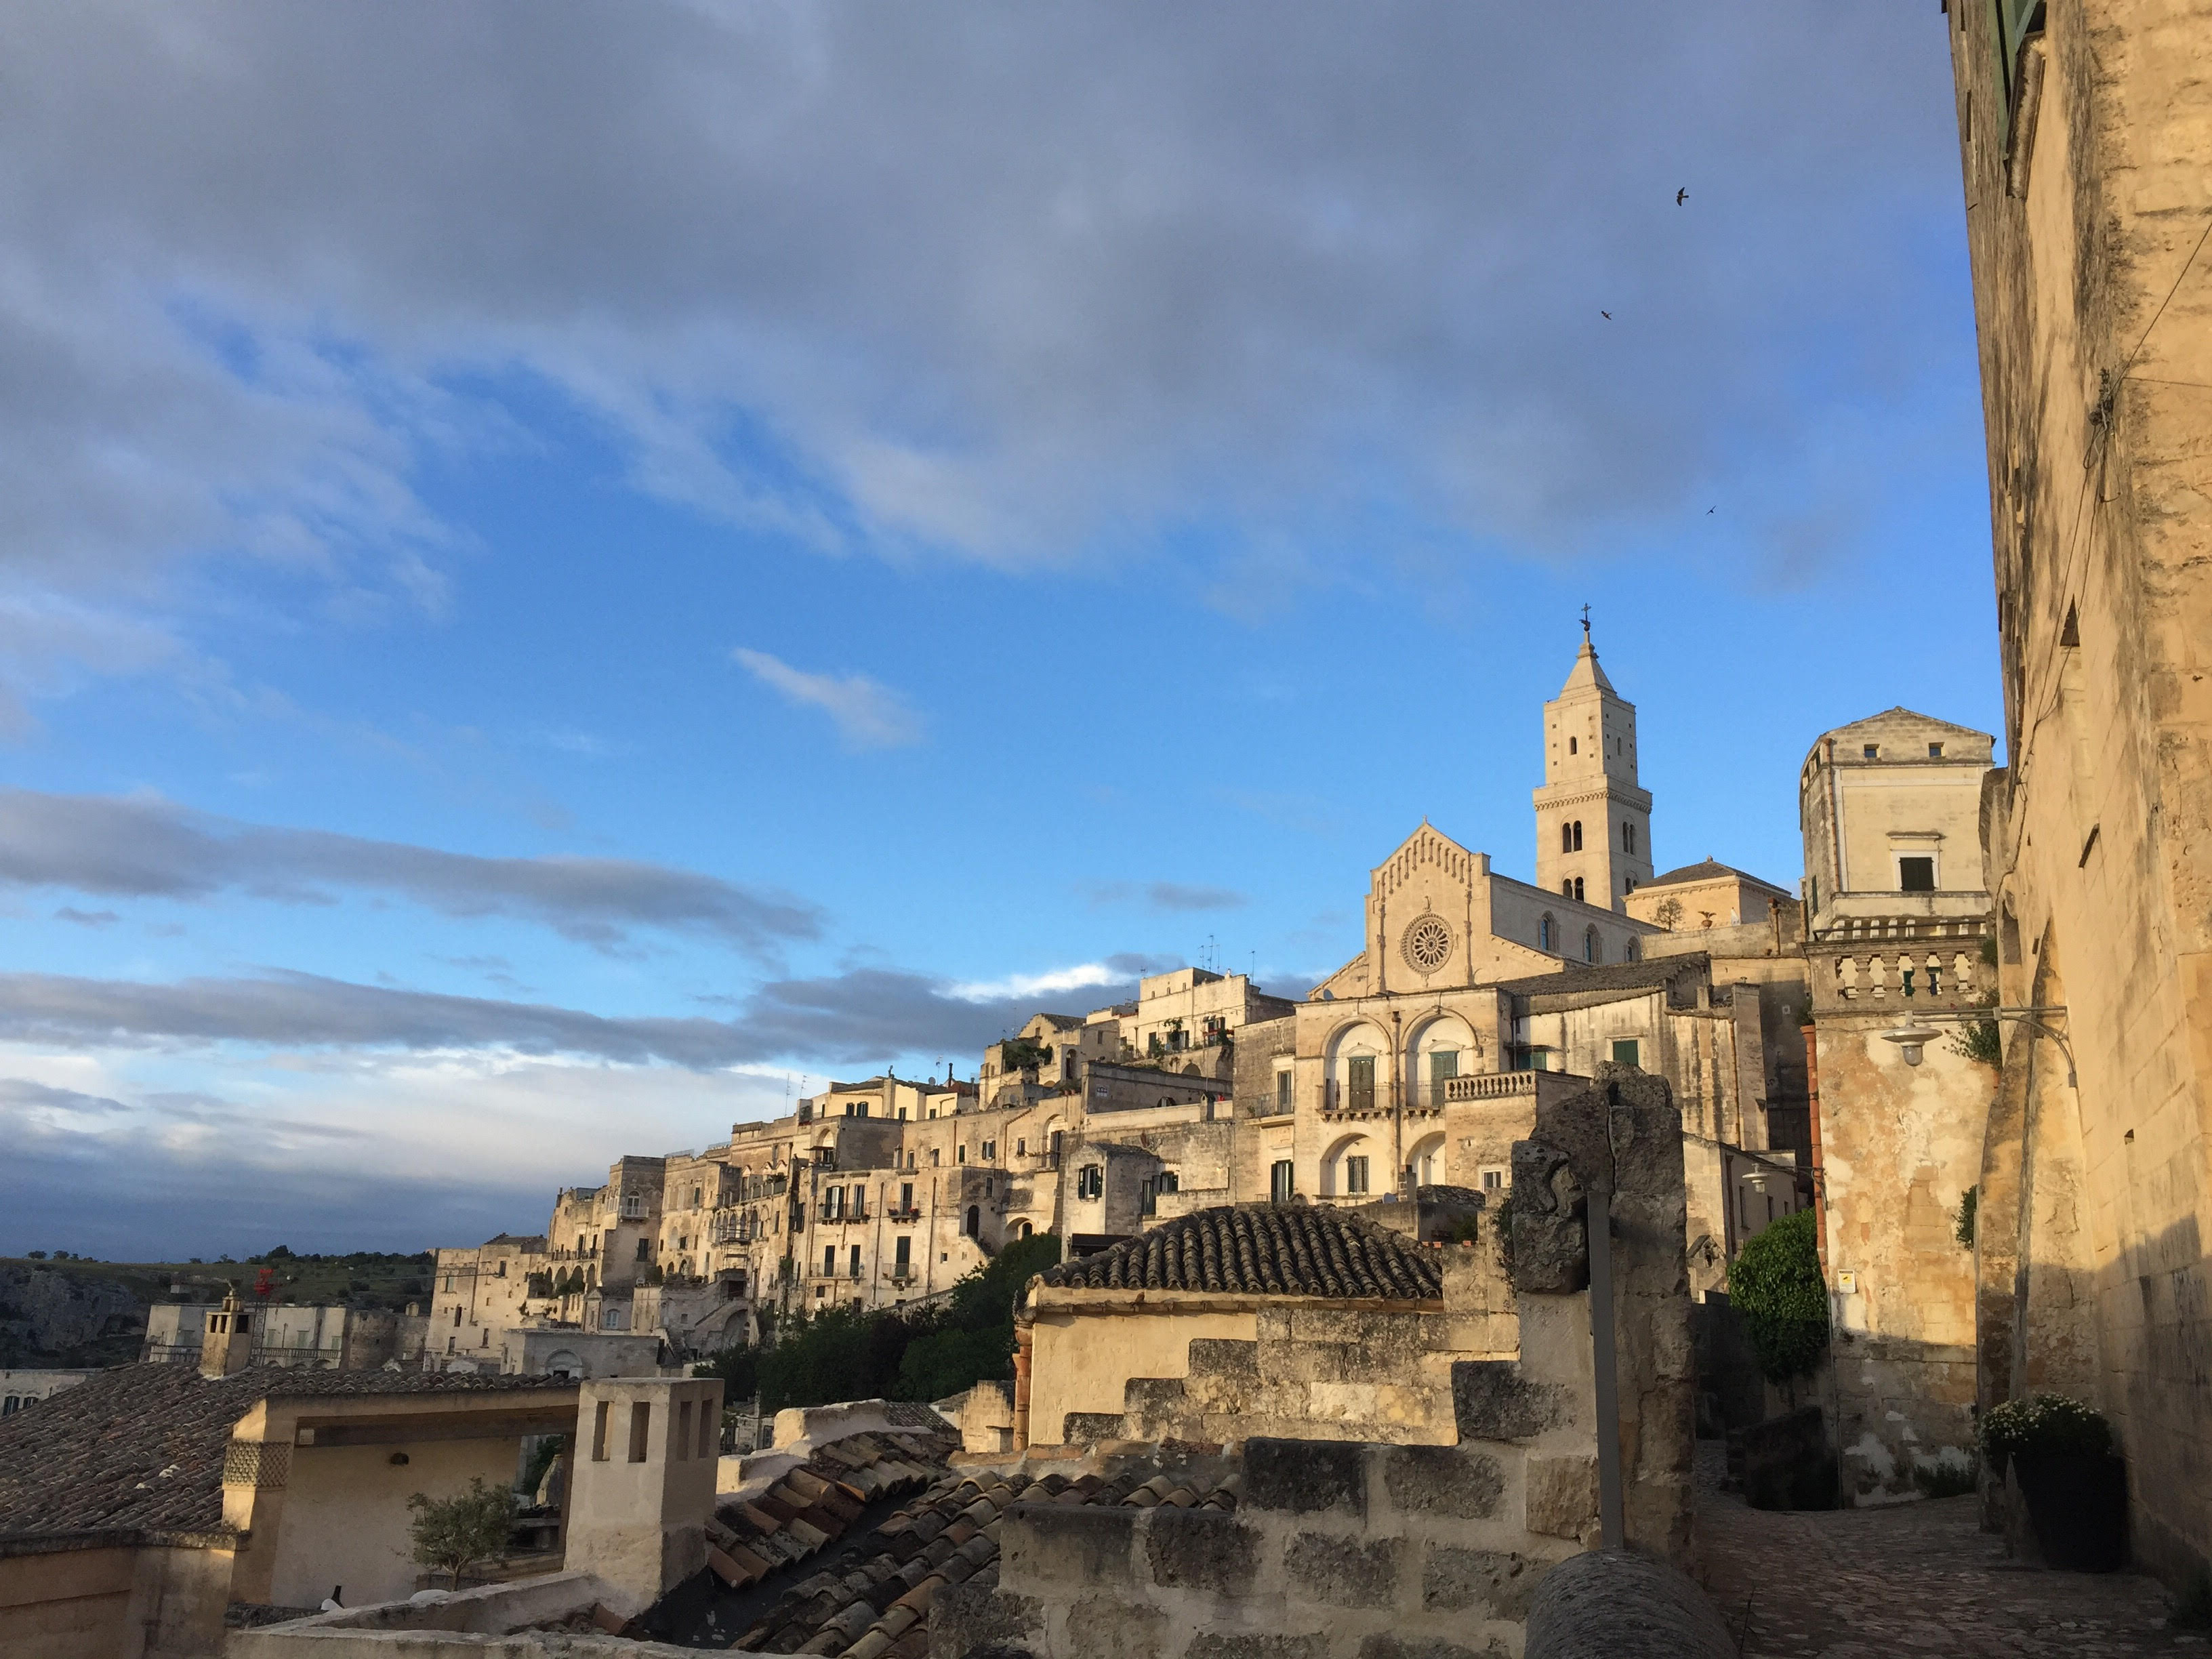 Matera: from shame of Italy to pride of Europe